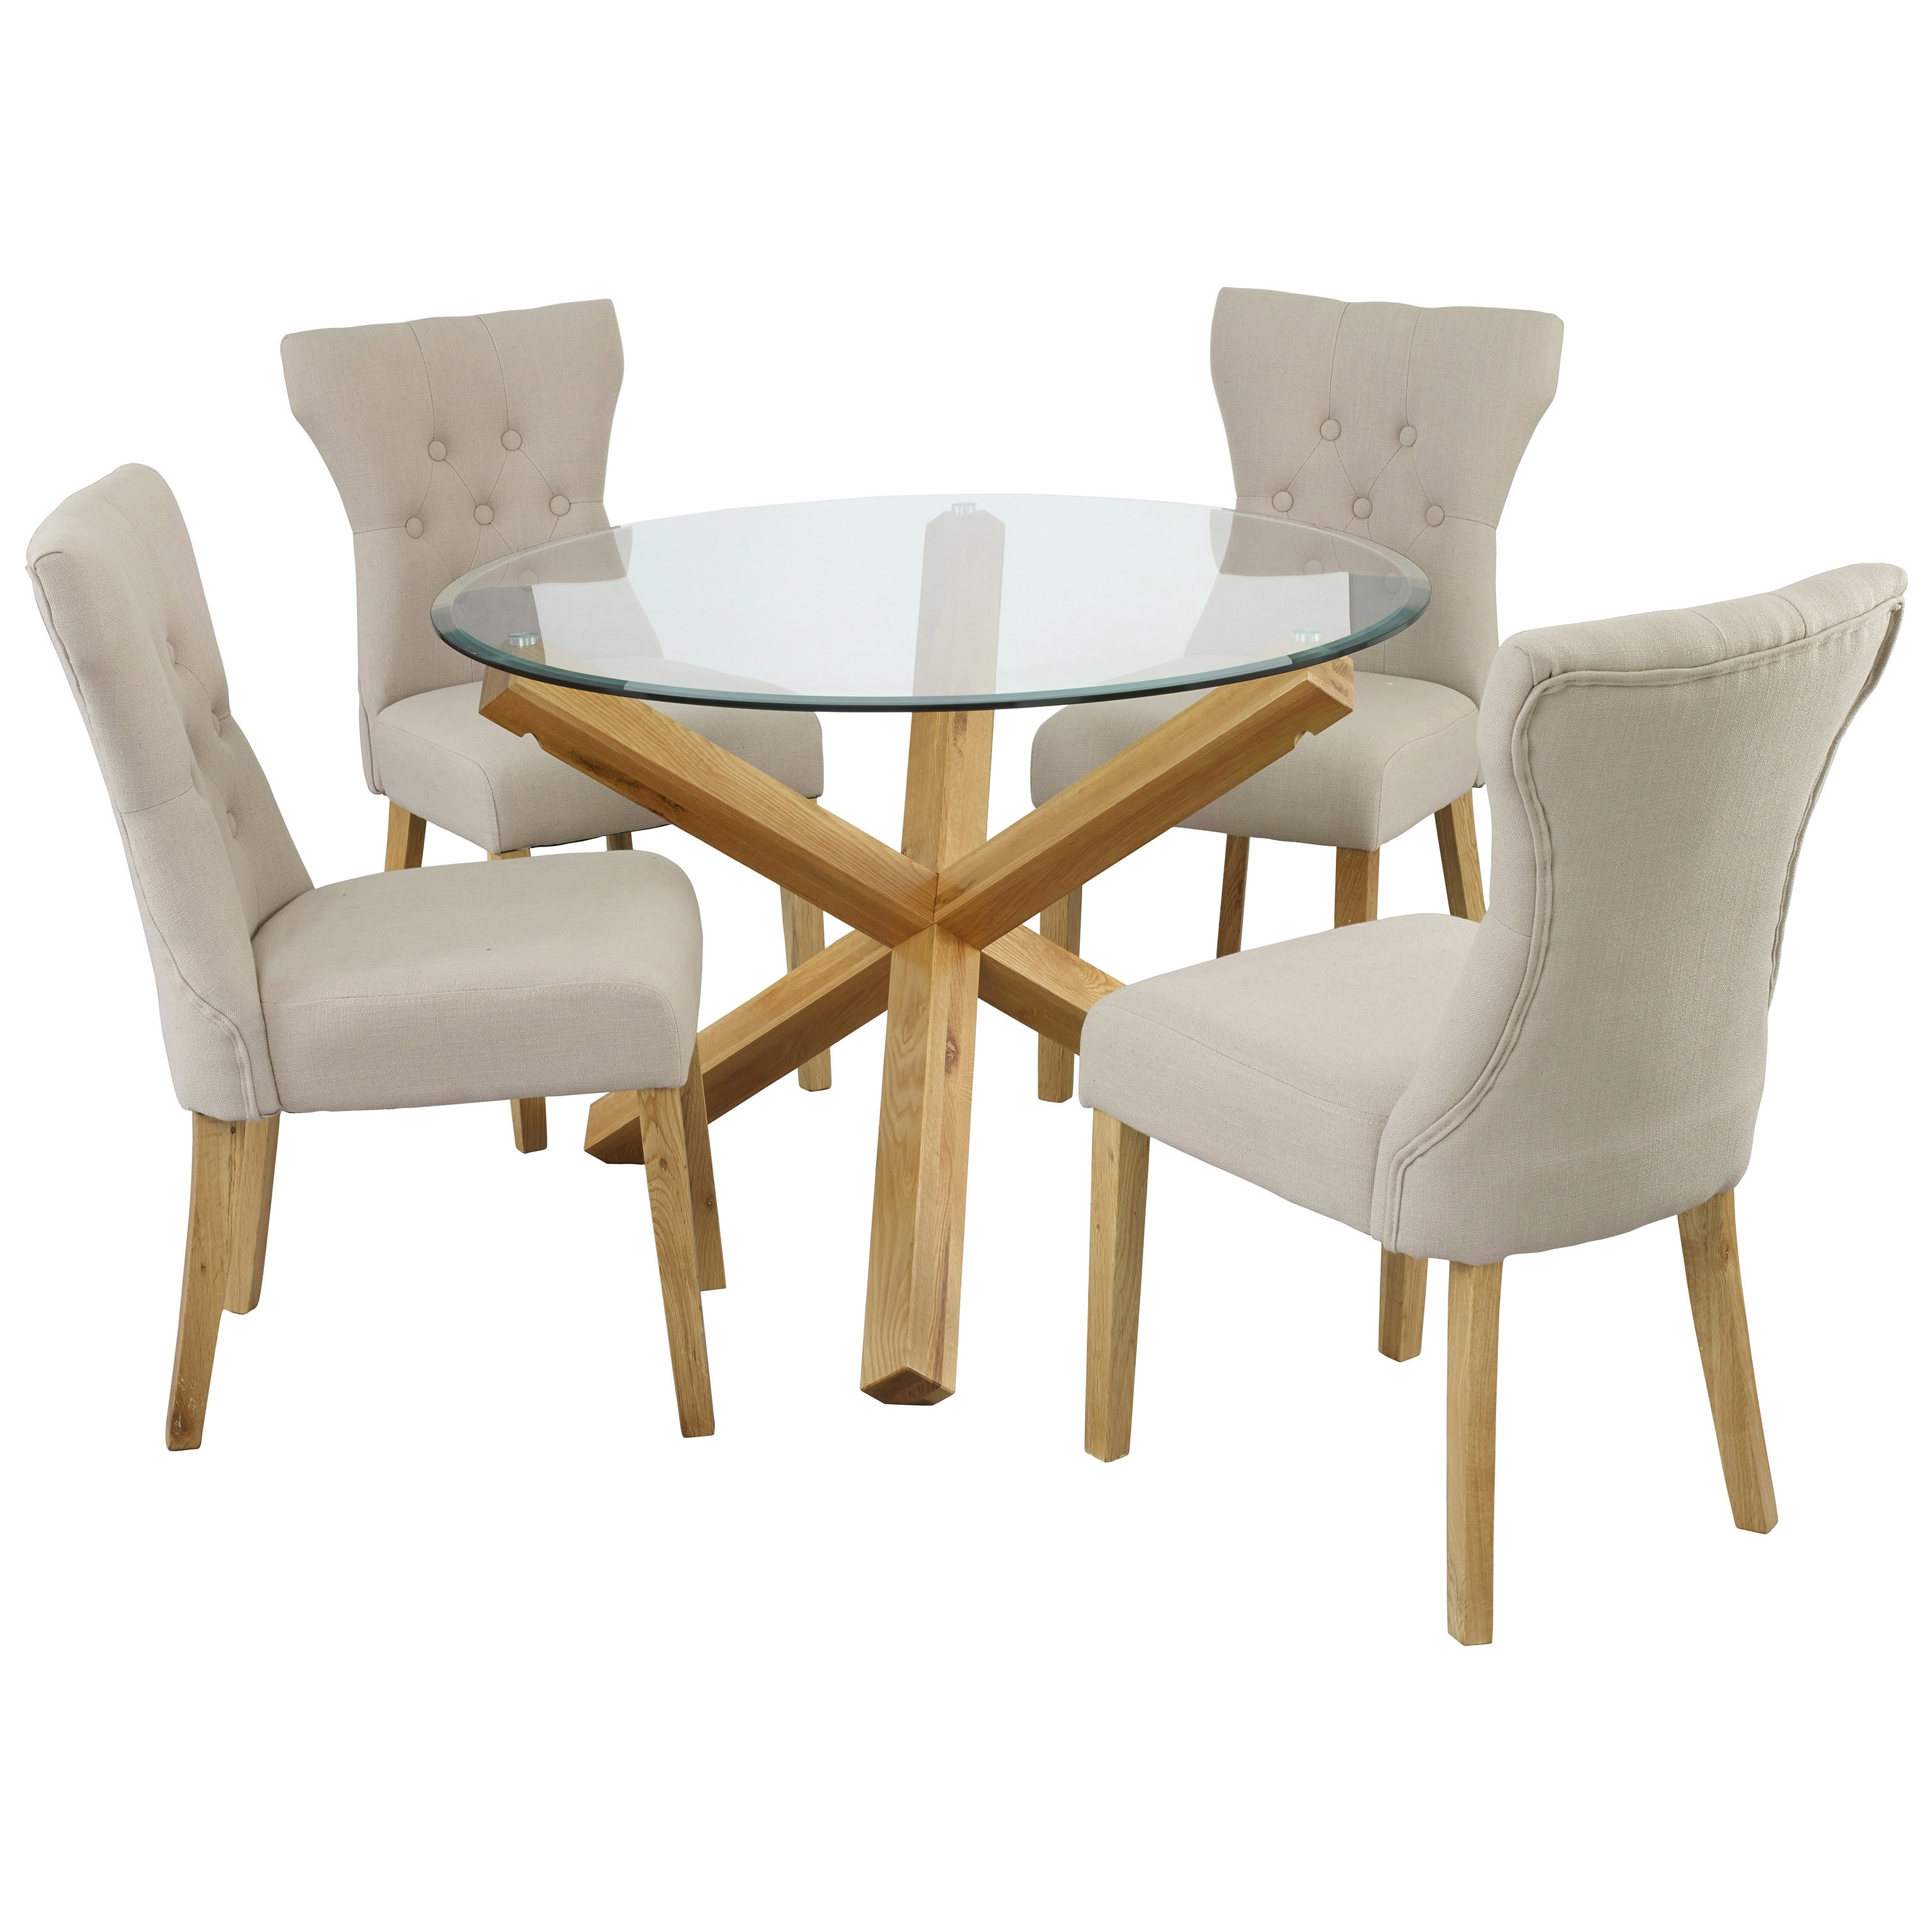 Preferred Oak & Glass Round Dining Table And Chair Set With 4 Fabric Seats Pertaining To Oak Glass Top Dining Tables (Gallery 5 of 25)